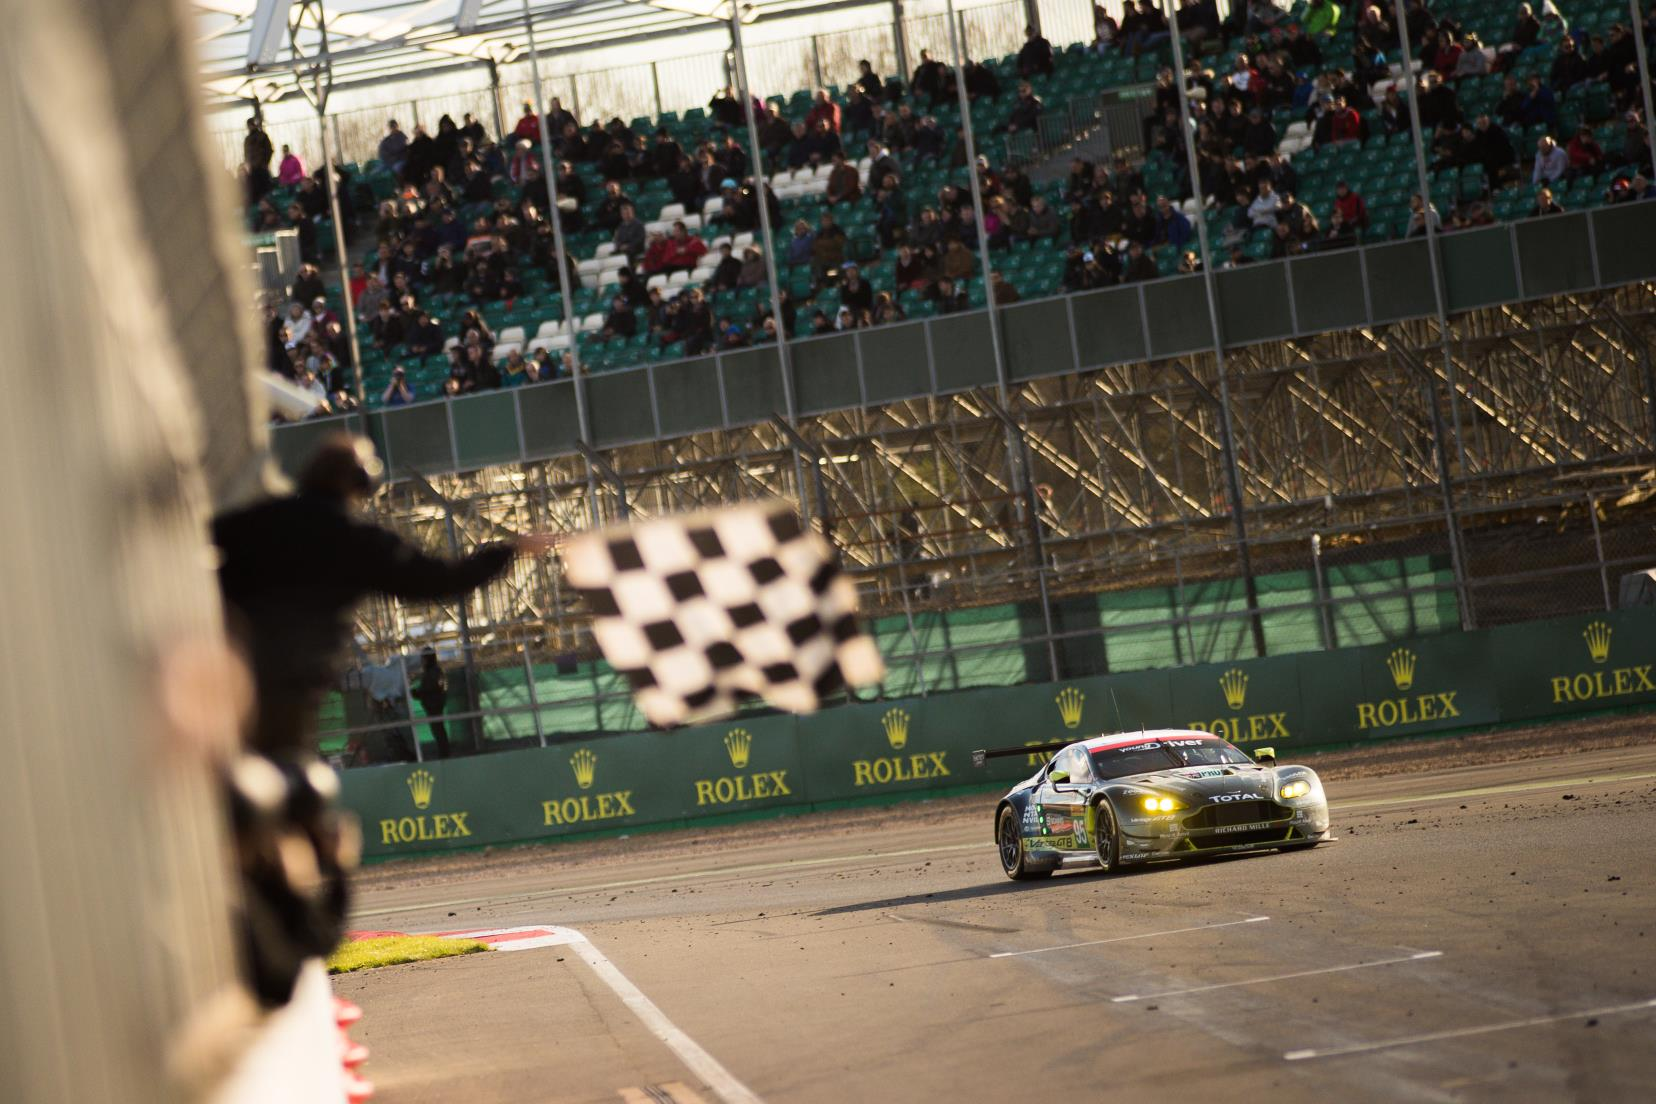 ASTON MARTIN RACING TAKES DOUBLE PODIUM AT FIA WEC SEASON OPENER 2